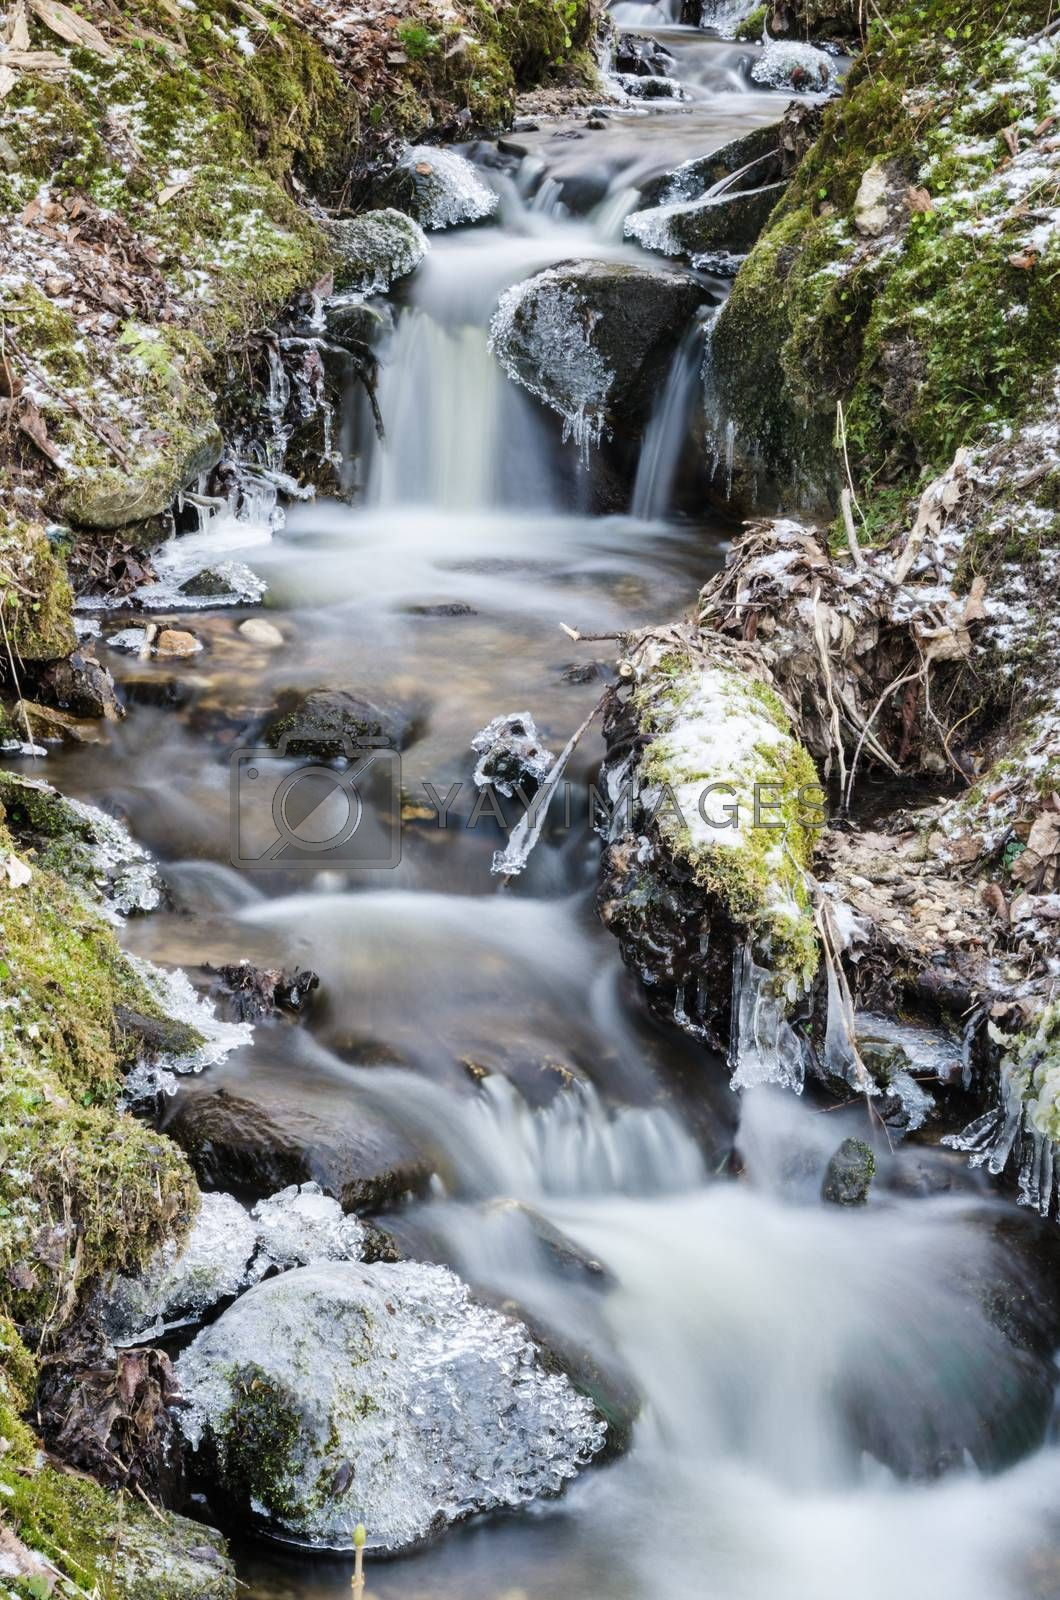 Royalty free image of Small creek with a waterfall close up by breeze09